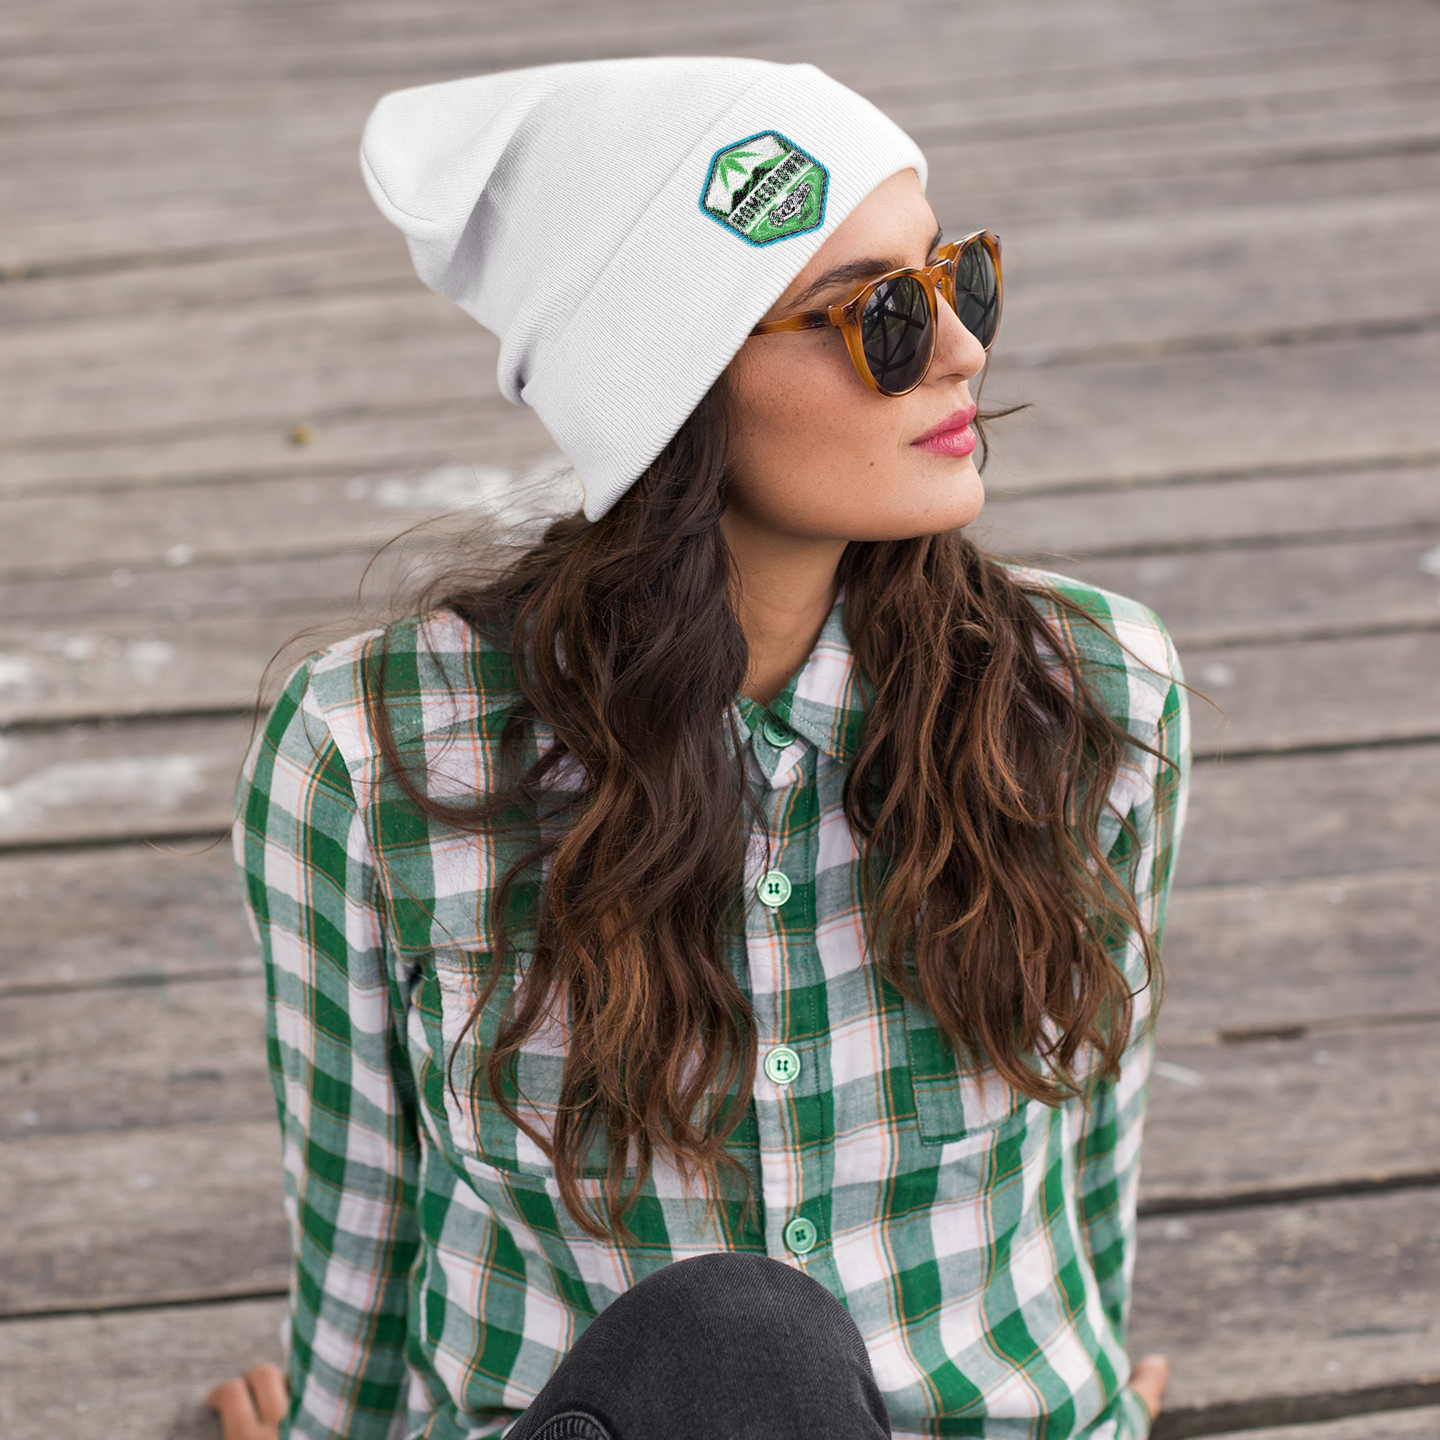 beanie-mockup-of-a-woman-wearing-a-green-plaid-shirt-24625 copy.png